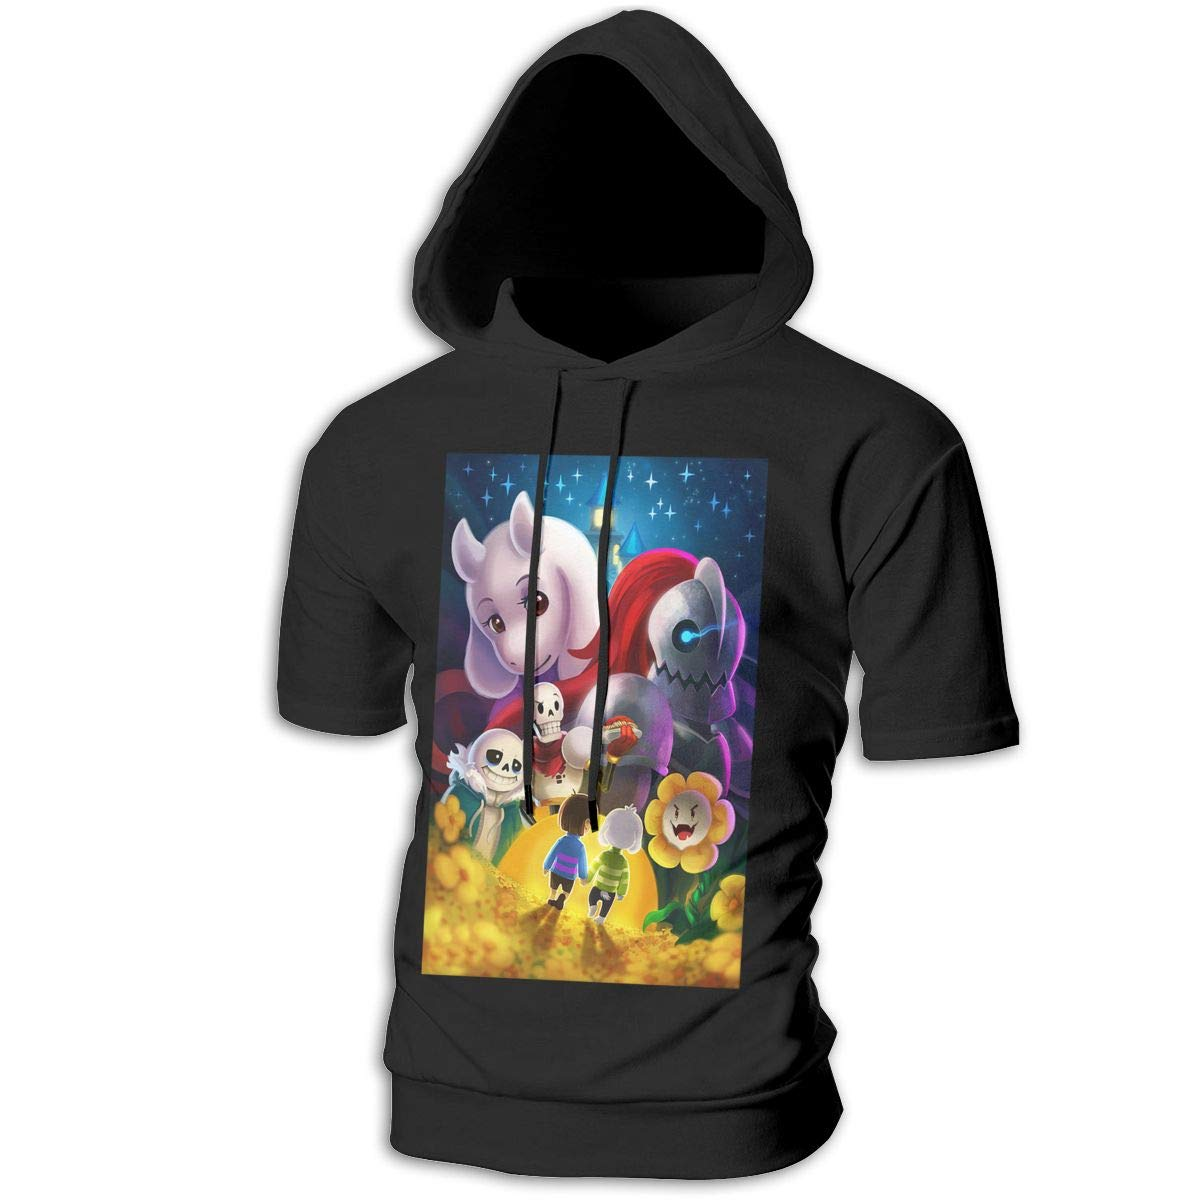 SHENGN Design Man with Cap Casual Undertale Family Sweater